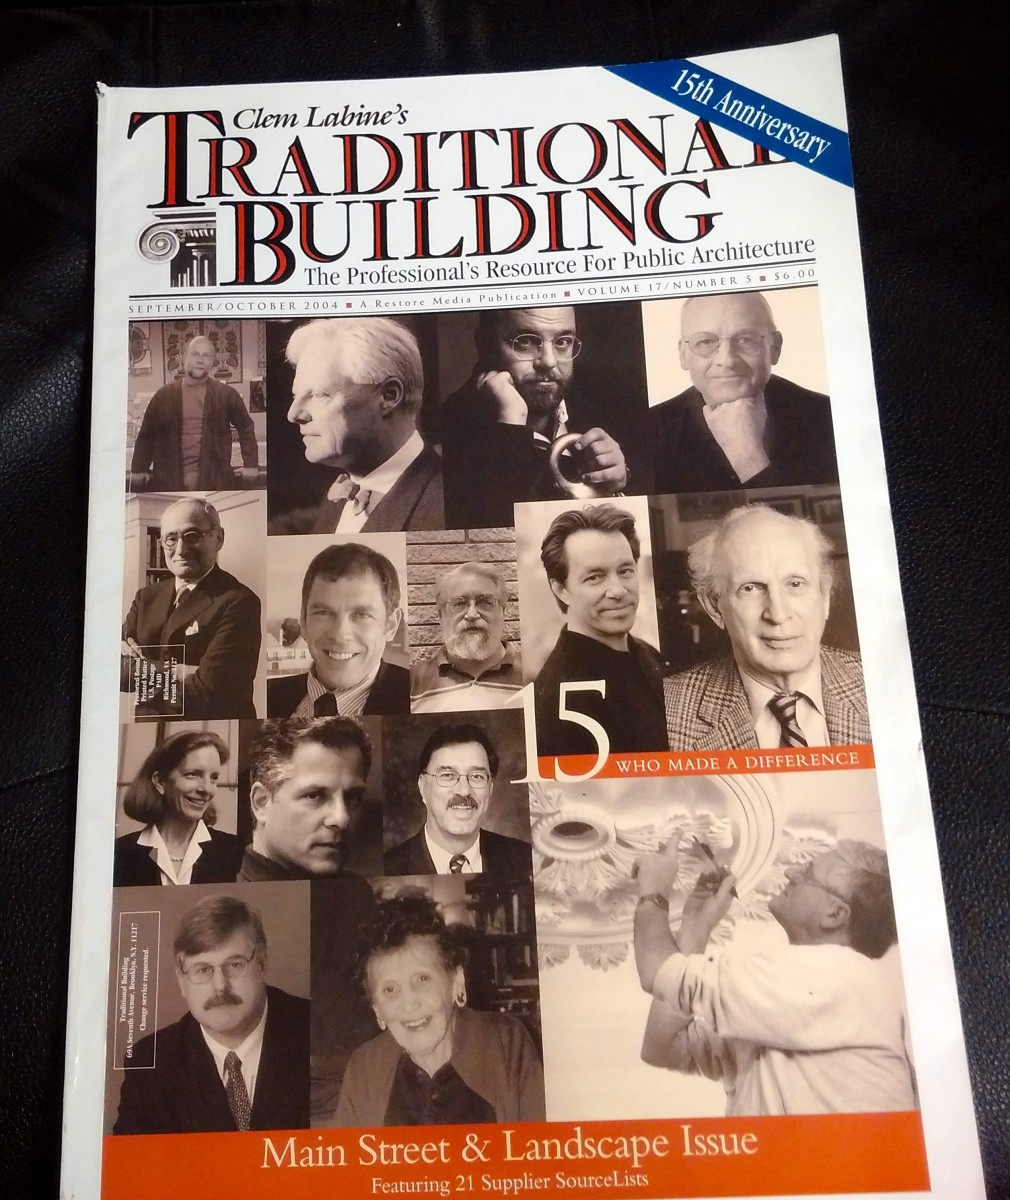 2004 Issue of Traditional Building